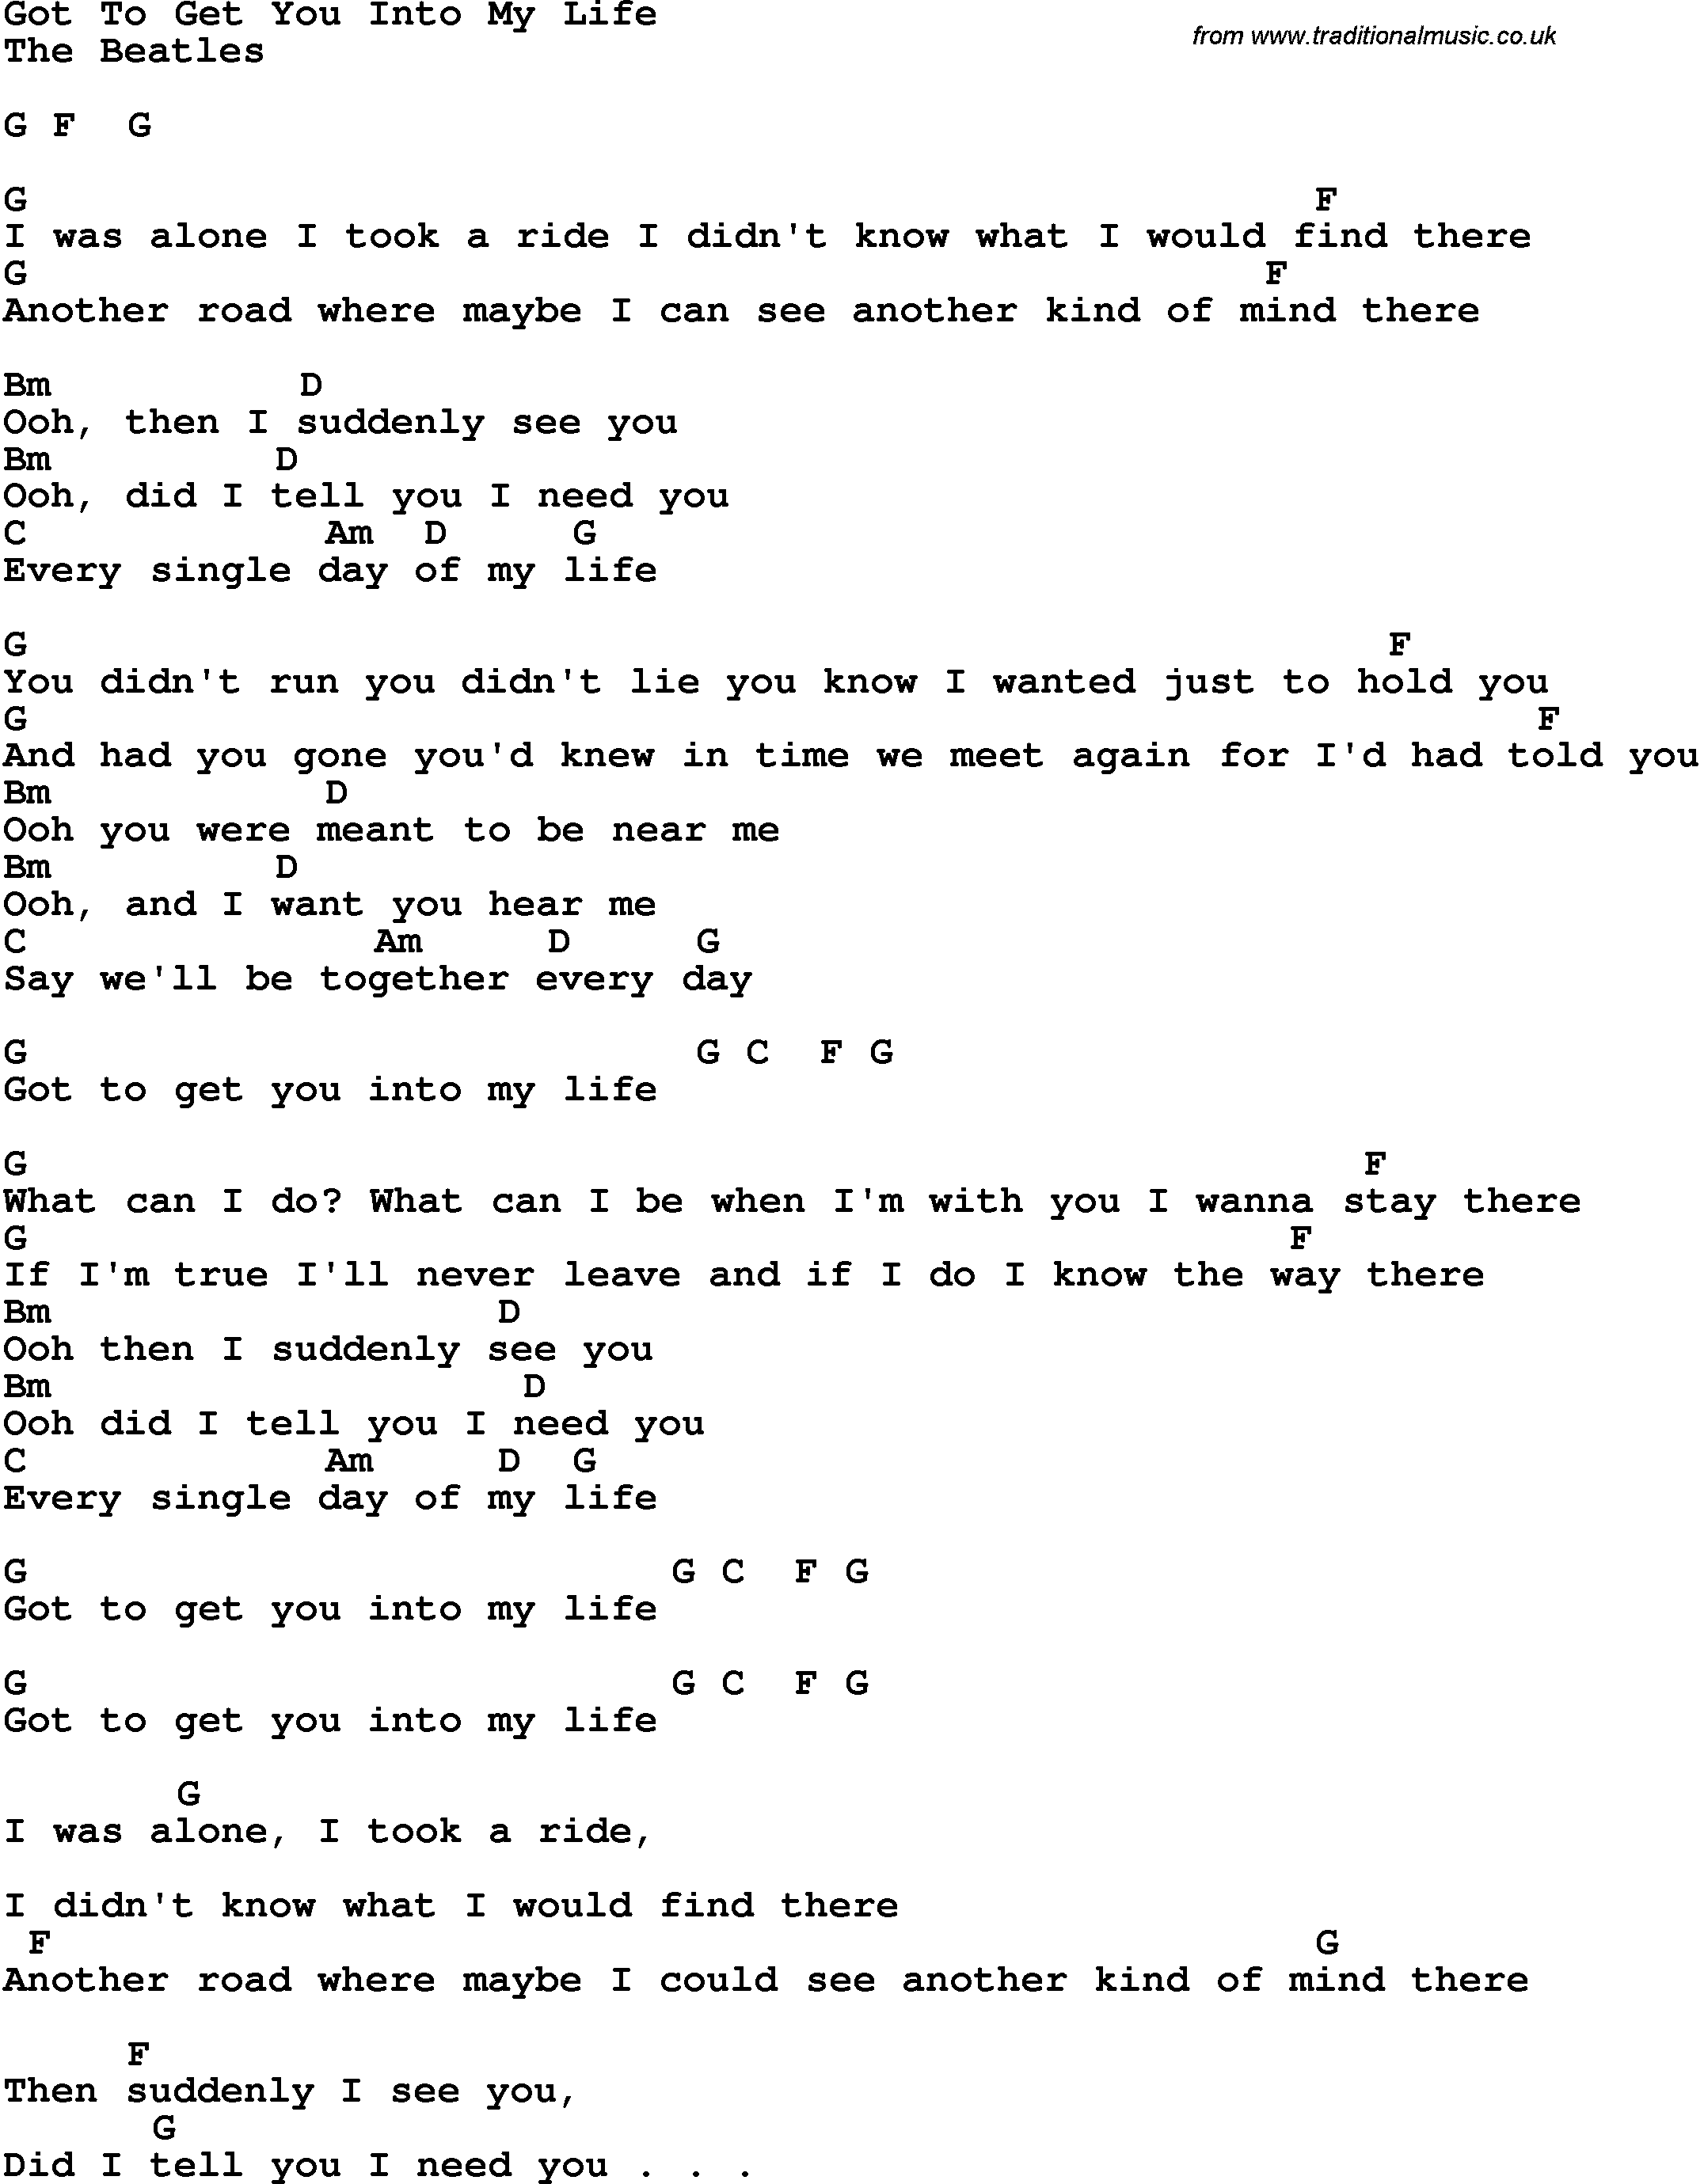 Song Lyrics With Guitar Chords For Got To Get You Into My Life